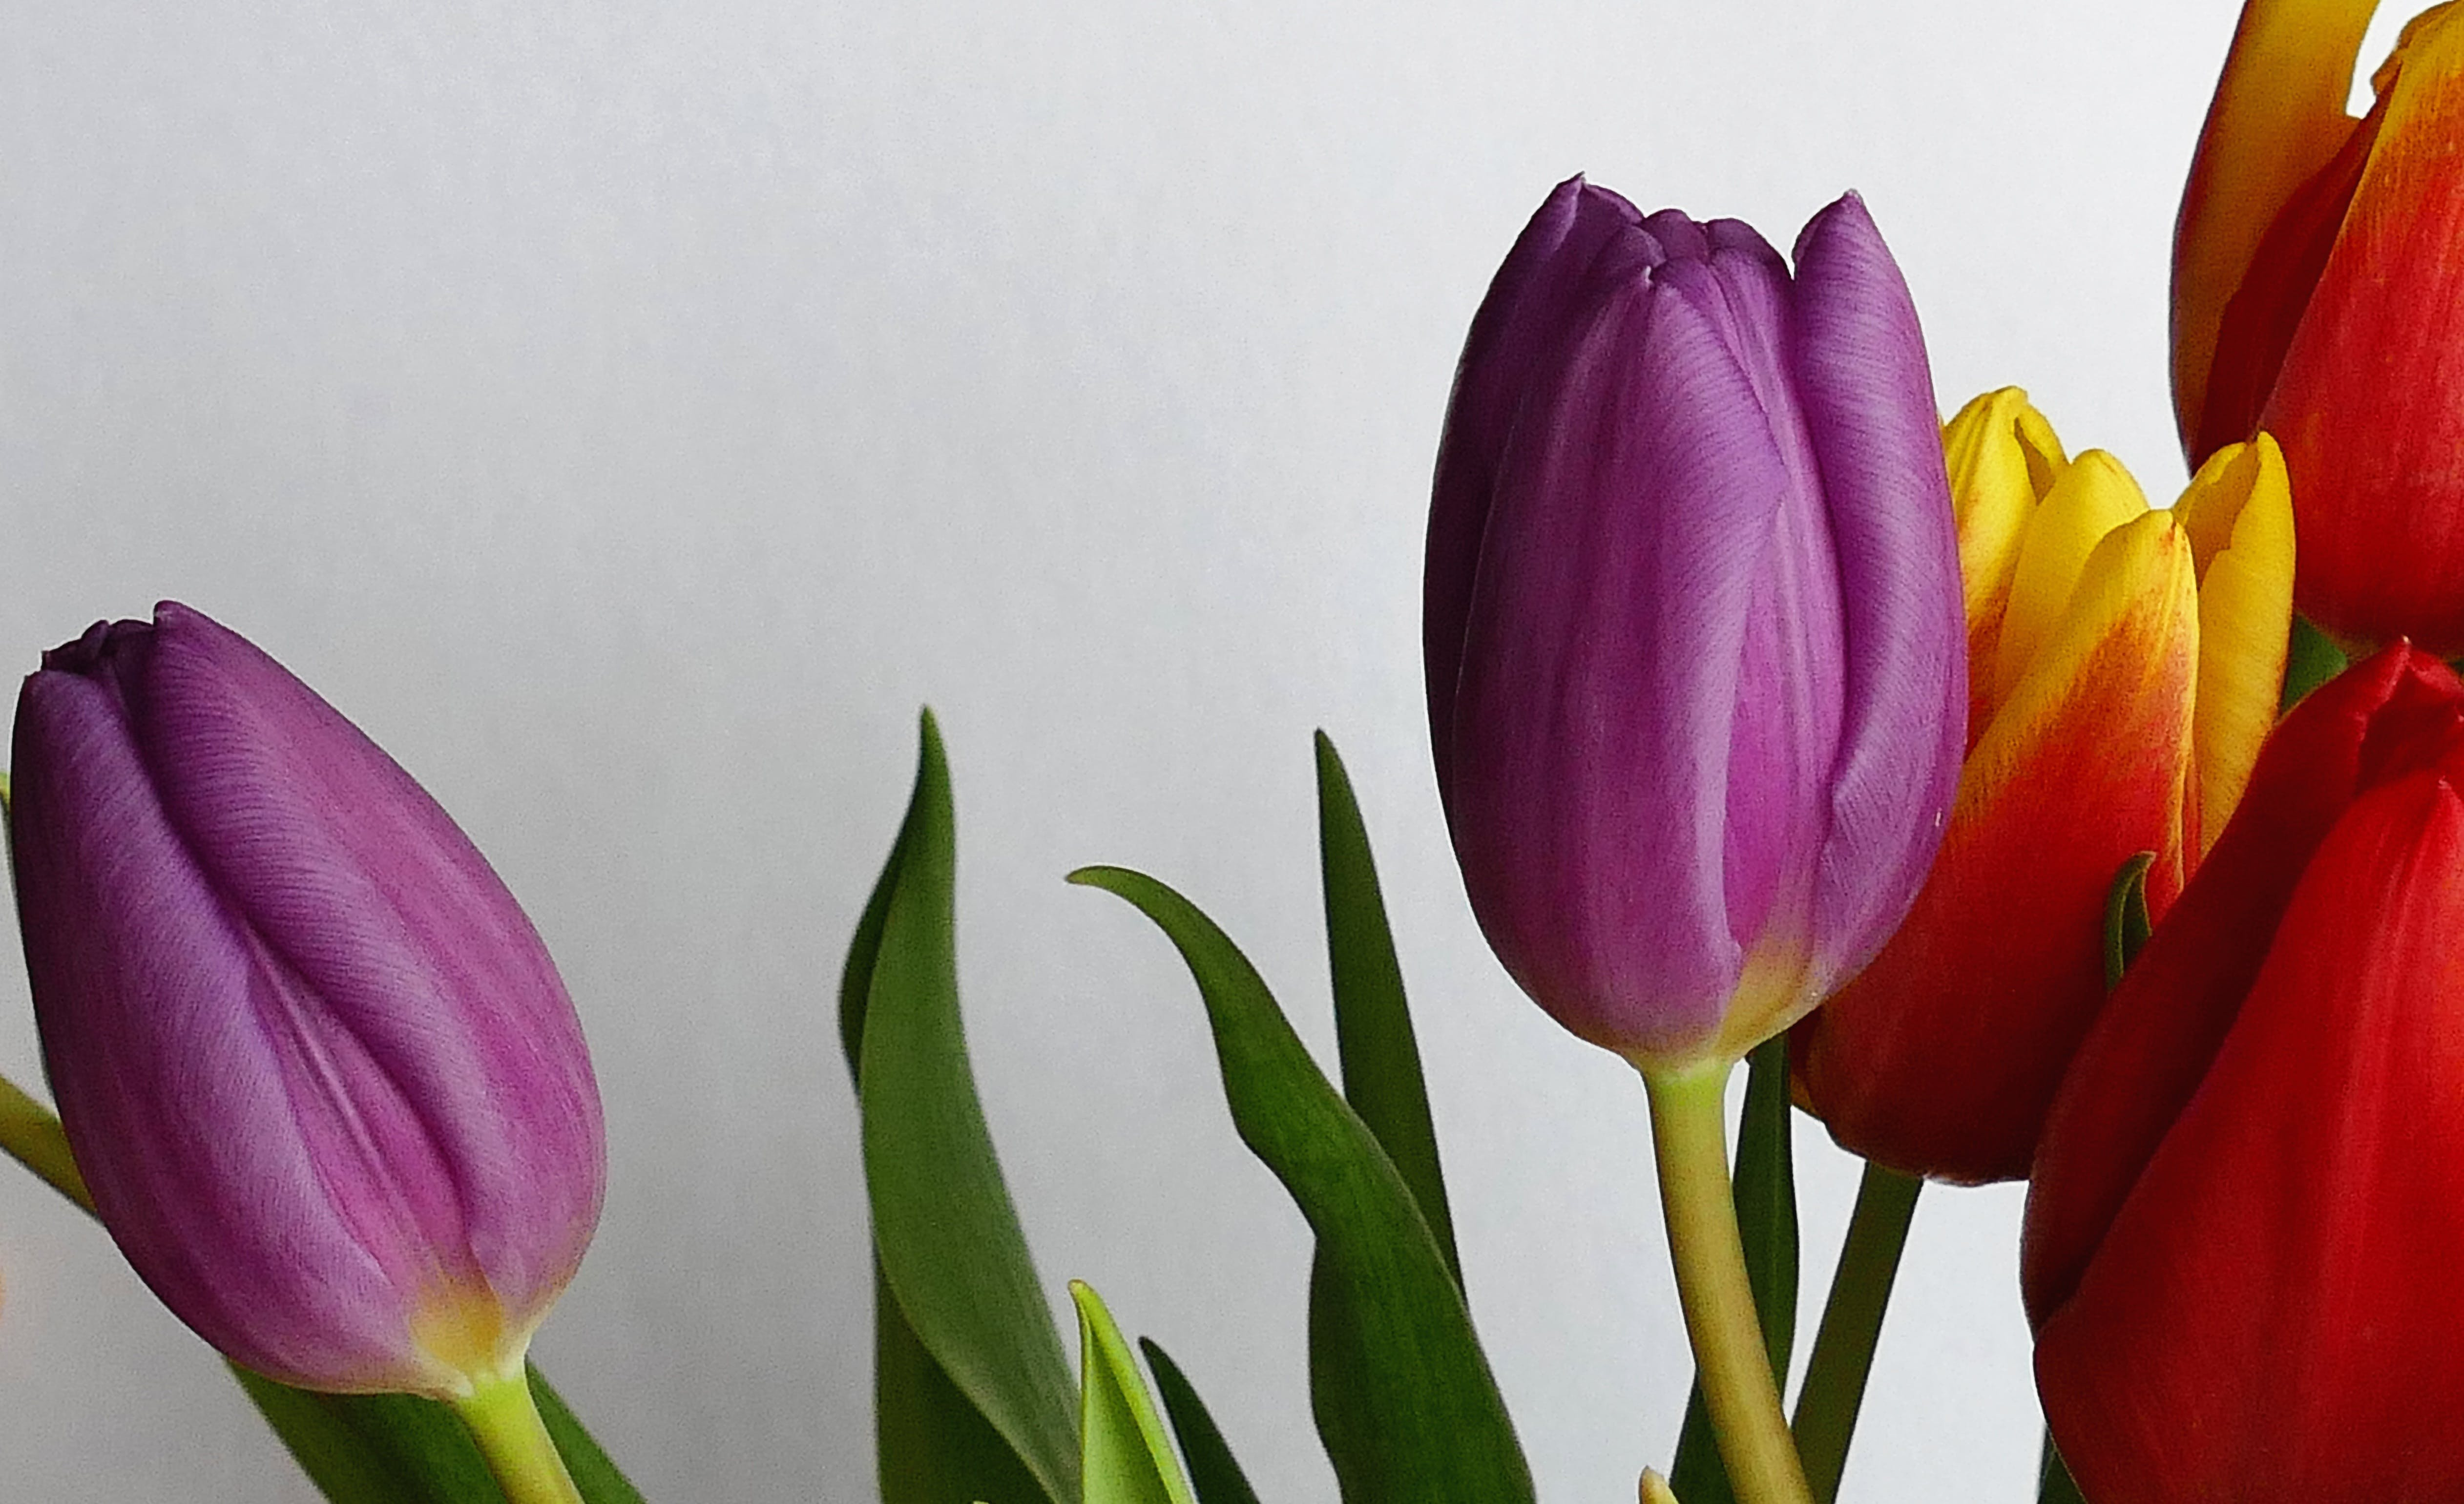 Purple and Red Tulip Flowers Near White Wall